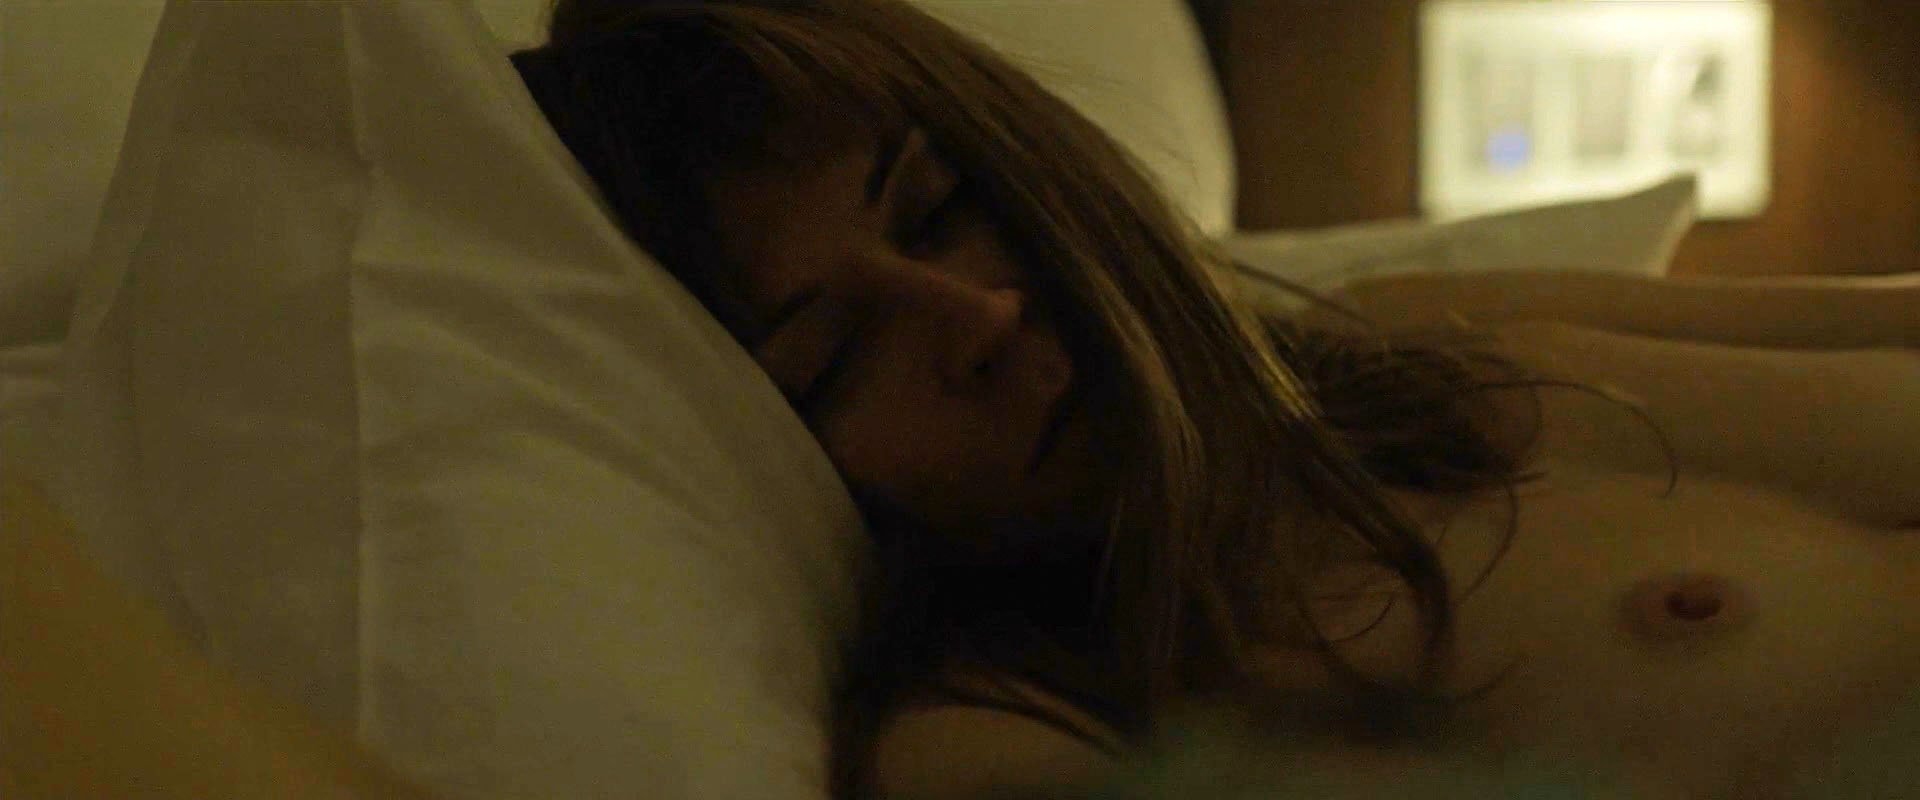 Marie-Josee Croze nude - 2 Nights Till Morning (2015)